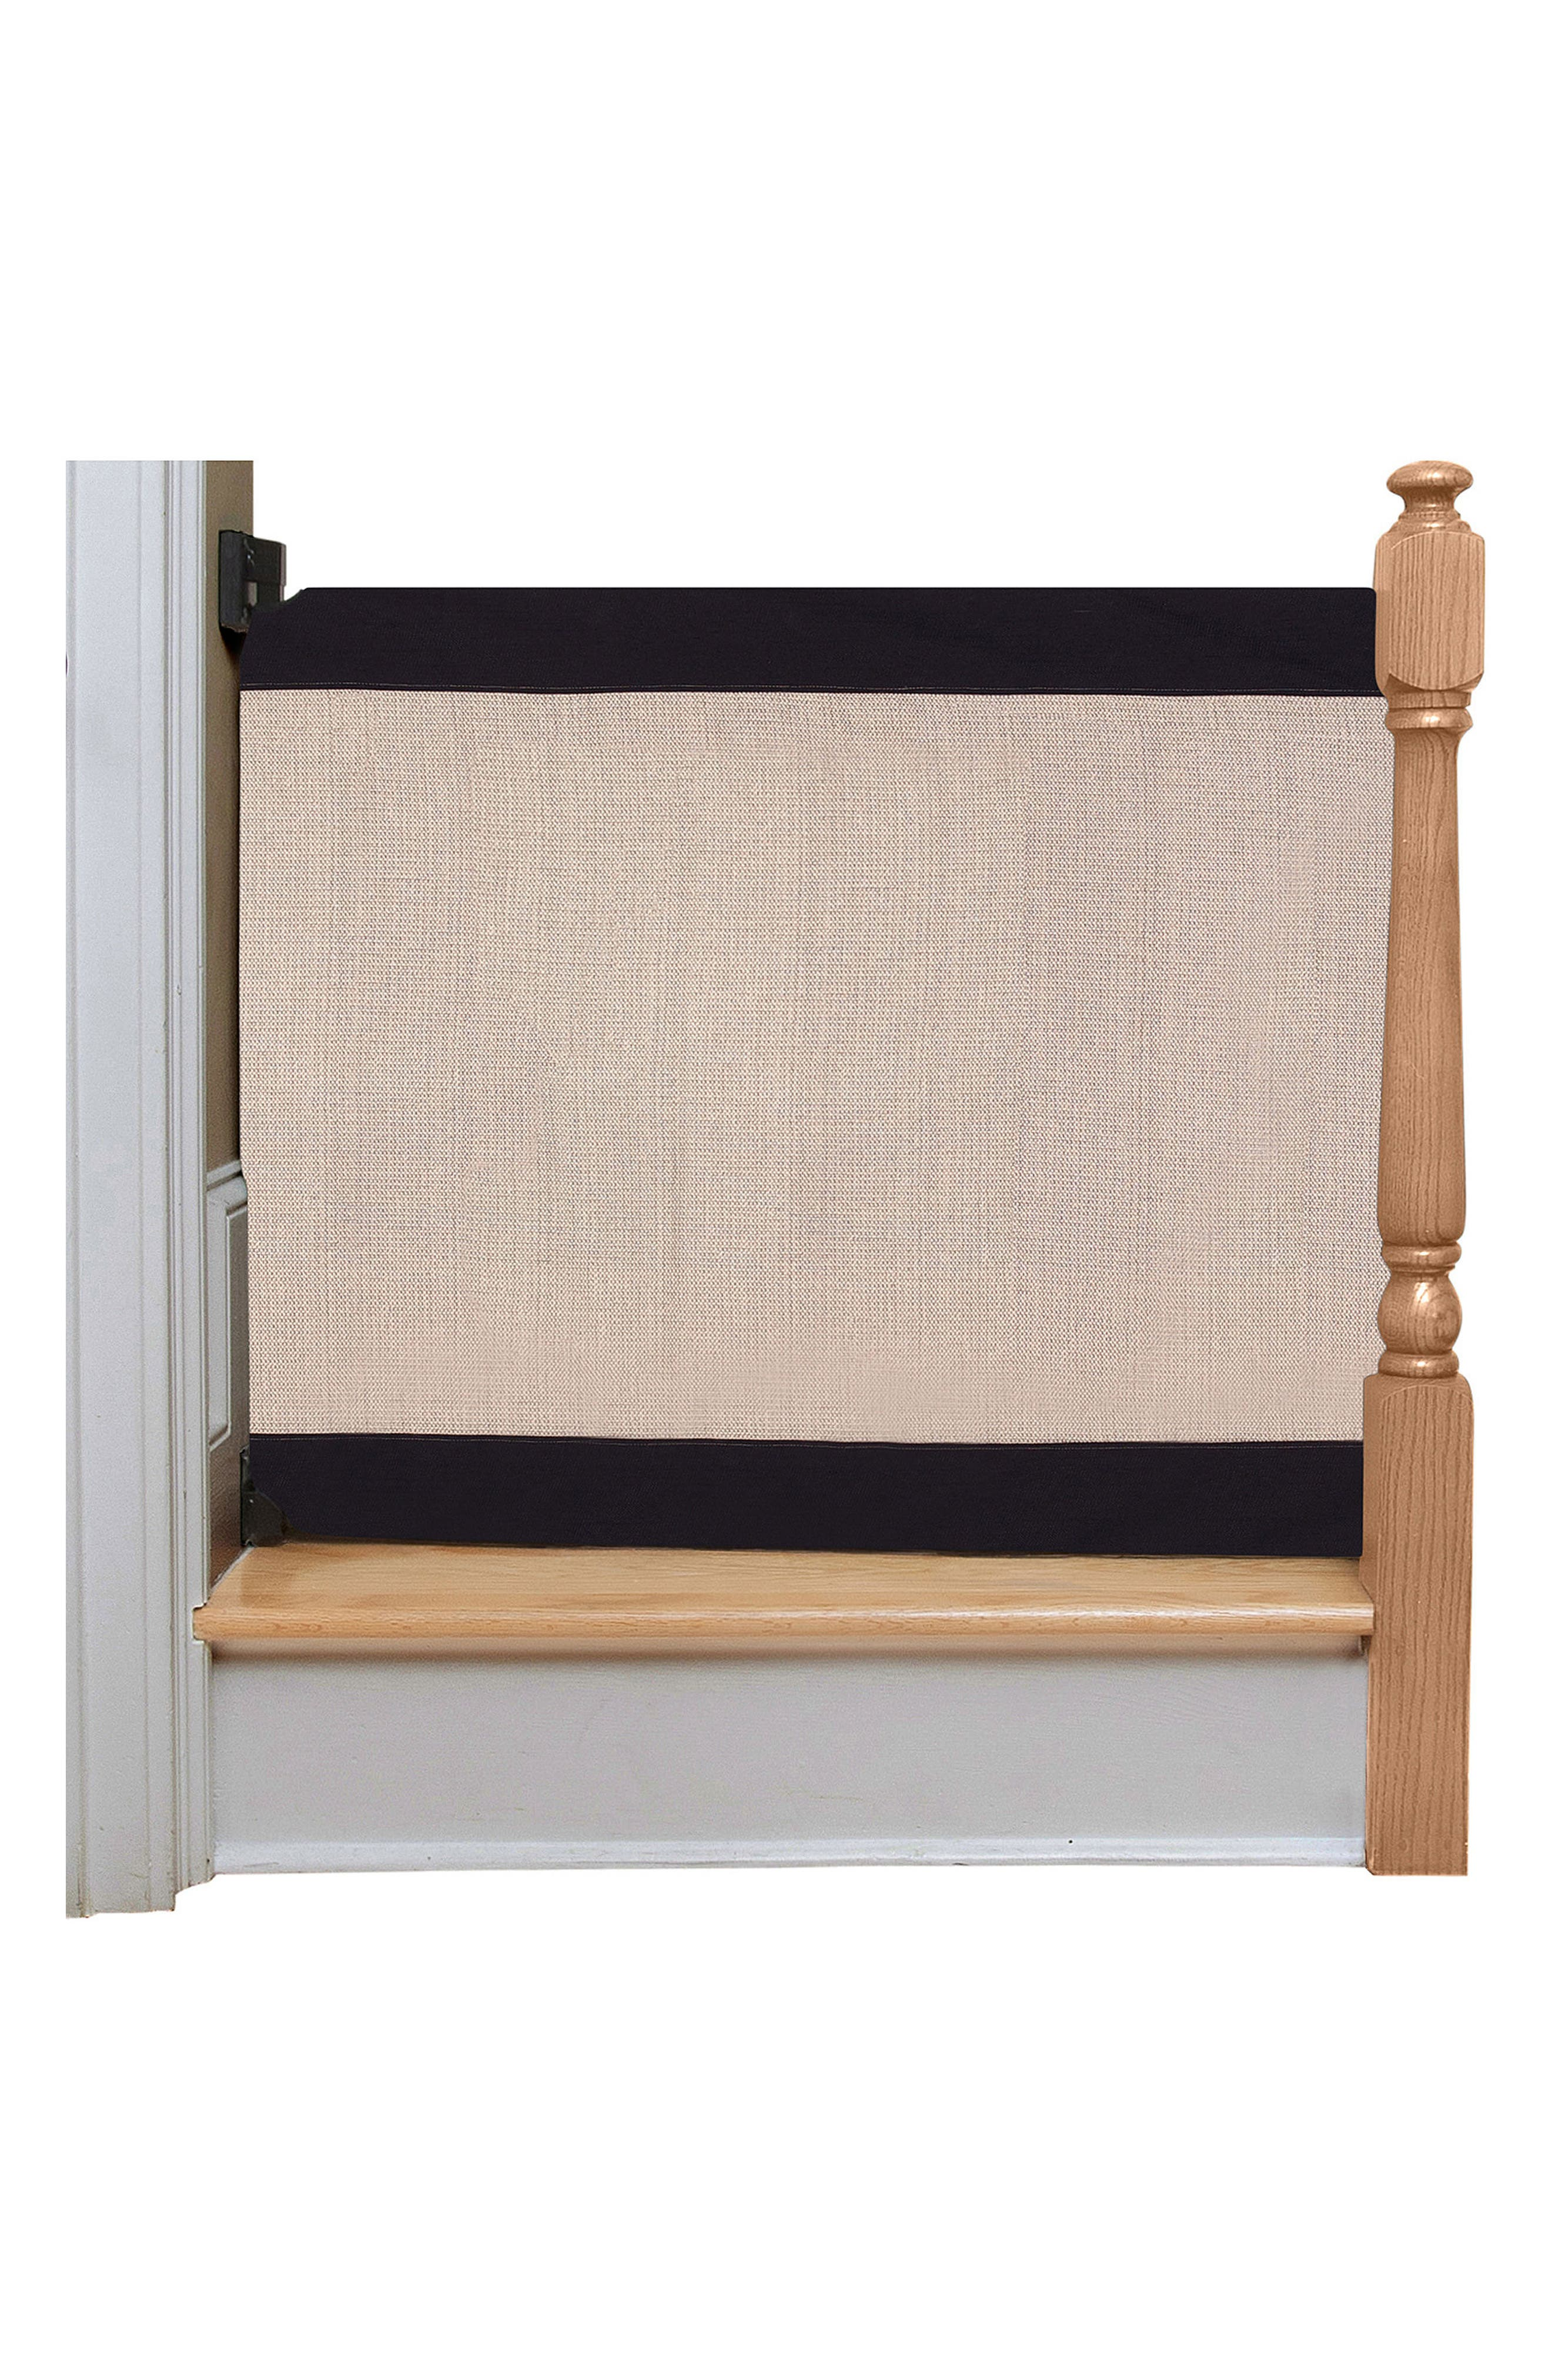 Wall to Banister Regular Width Safety Gate,                             Main thumbnail 1, color,                             001